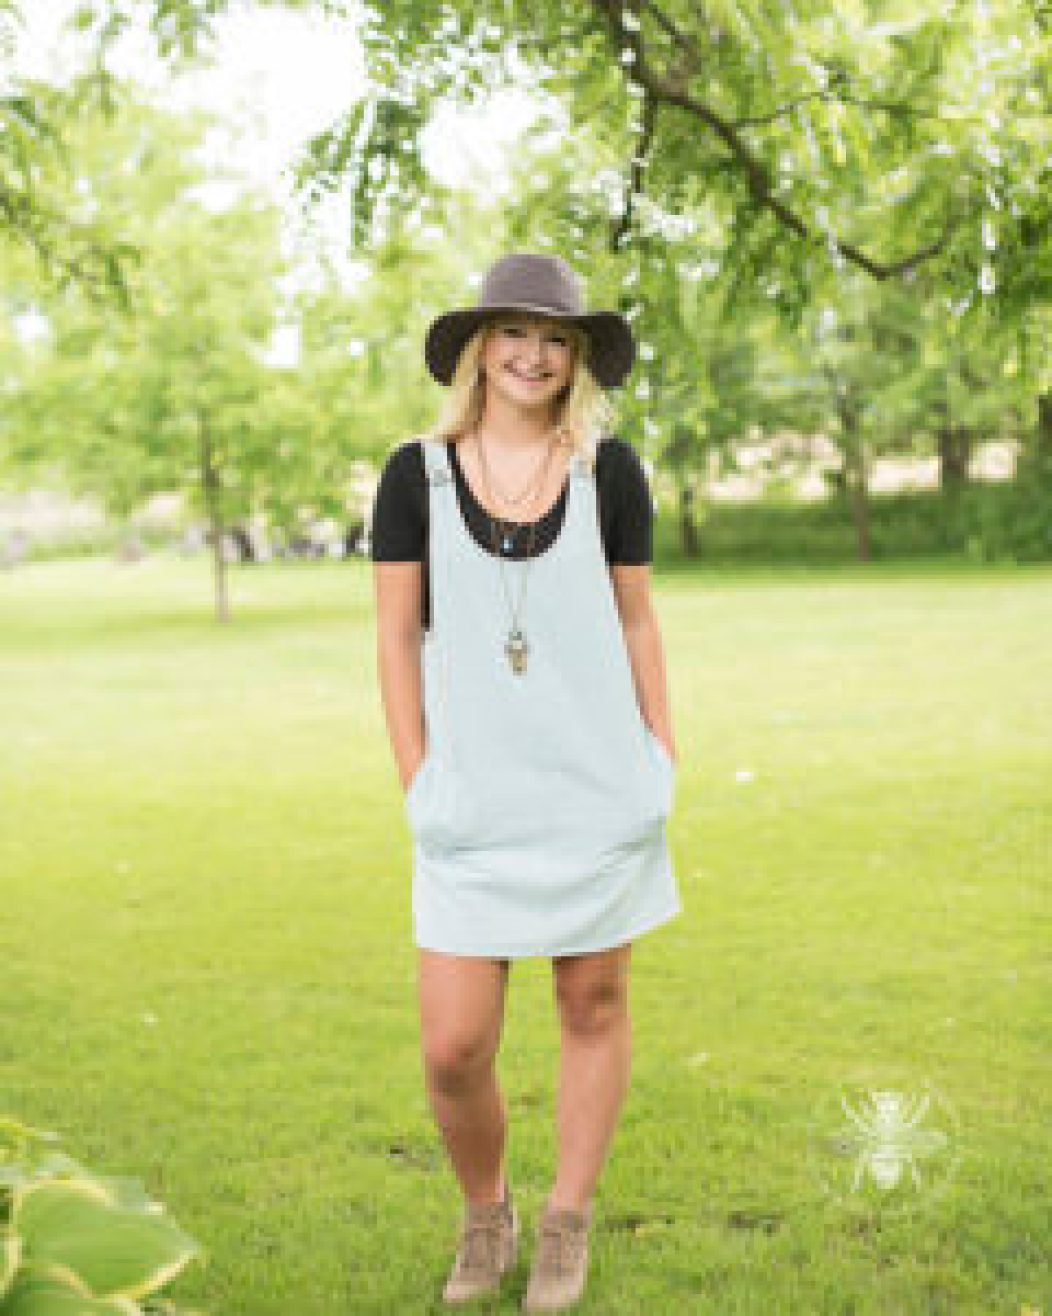 senior girl poses in dress and hat in a field